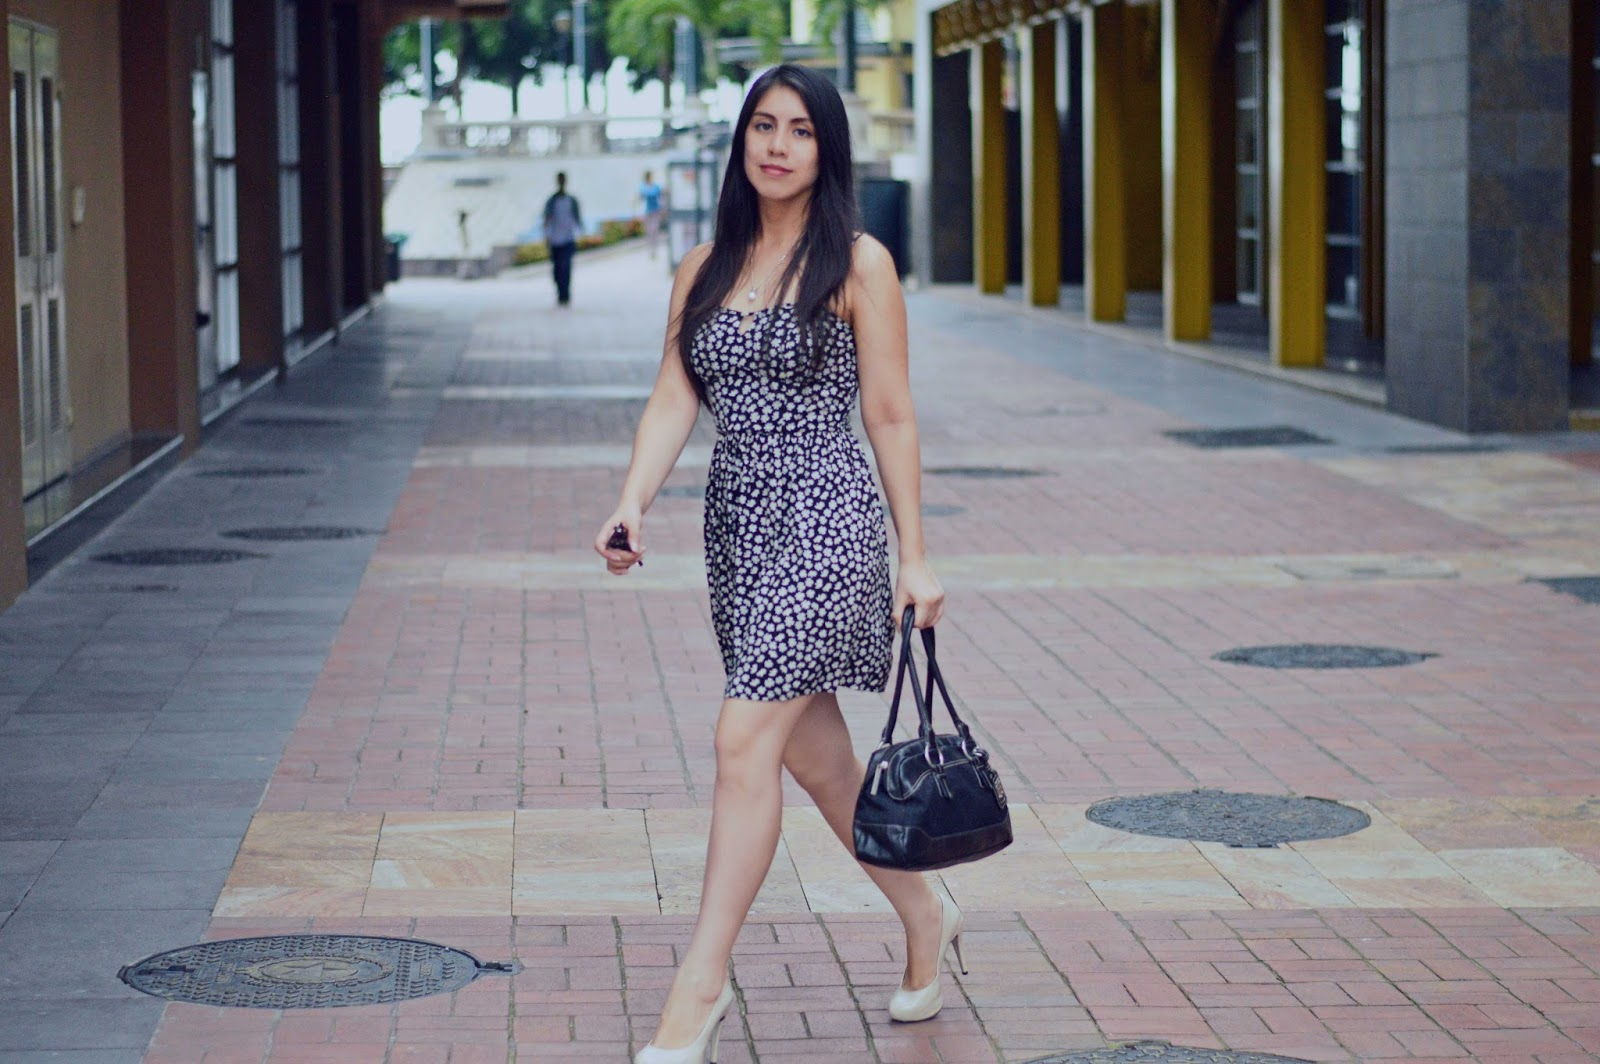 silvia-armas-flower-power-dress-latina-fashion-blogger-ecuador